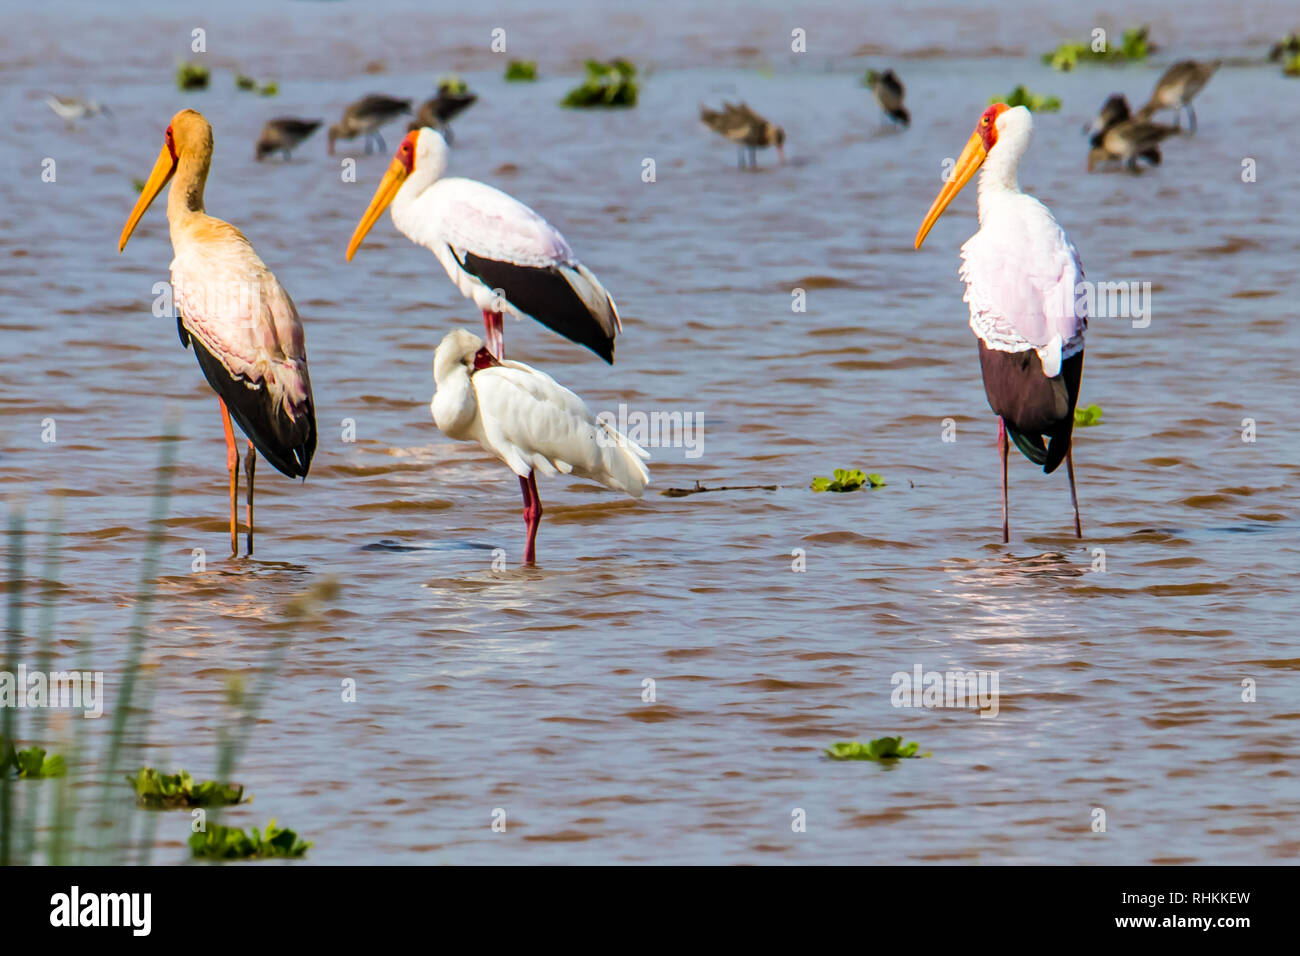 Saddle-Billed Storks standing in the water - Stock Image